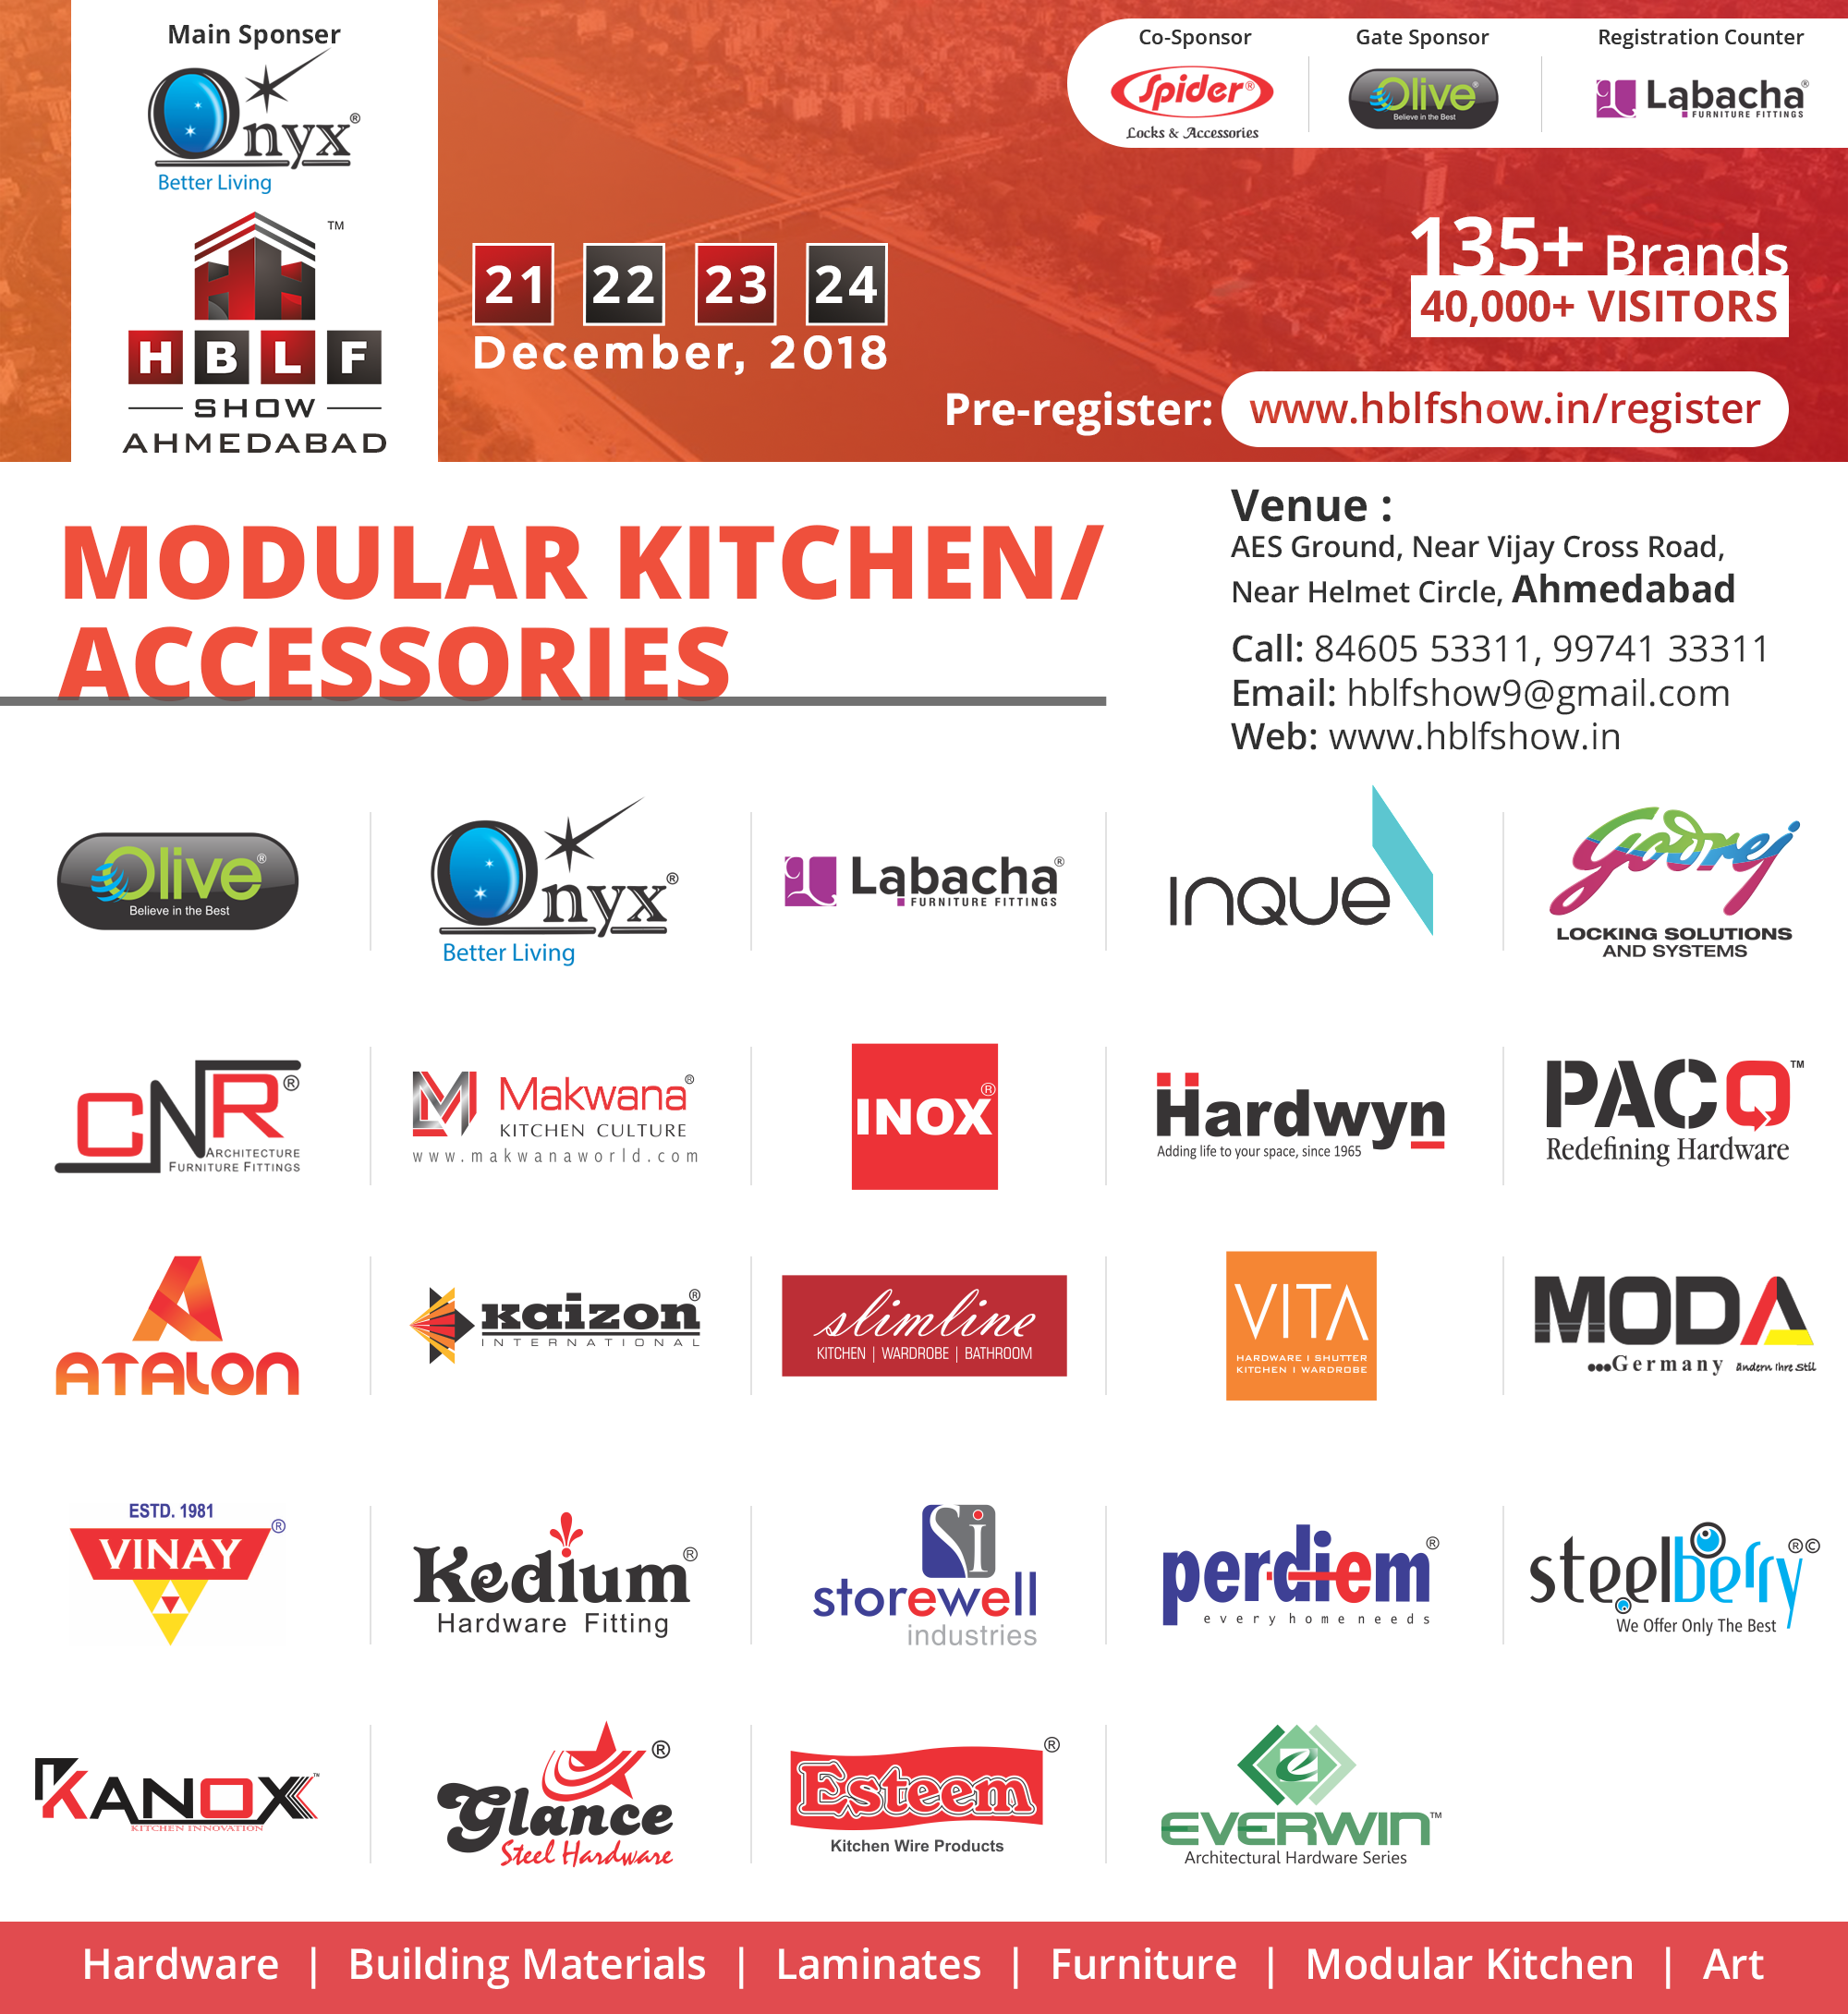 Revealing The List Of Modular Kitchen Accessories Brands Paring In Hblf Show Each One Is A Leading Brand Its Respective Segment